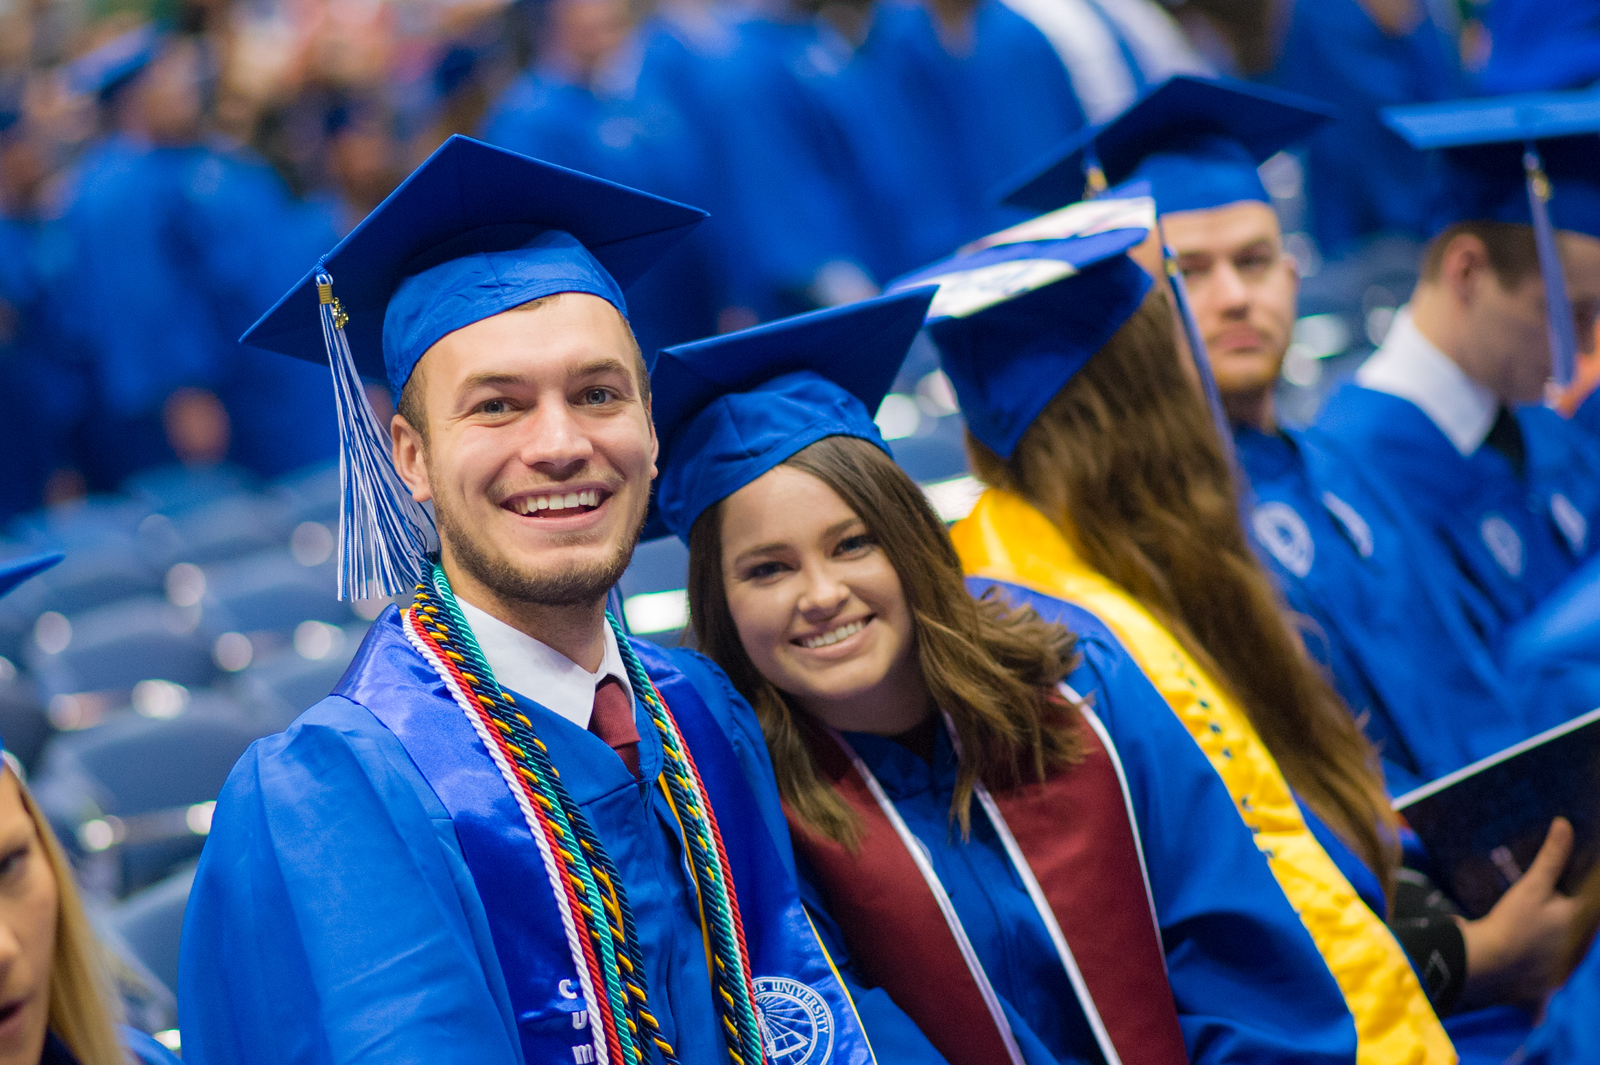 Indiana State celebrates graduates at winter commencement